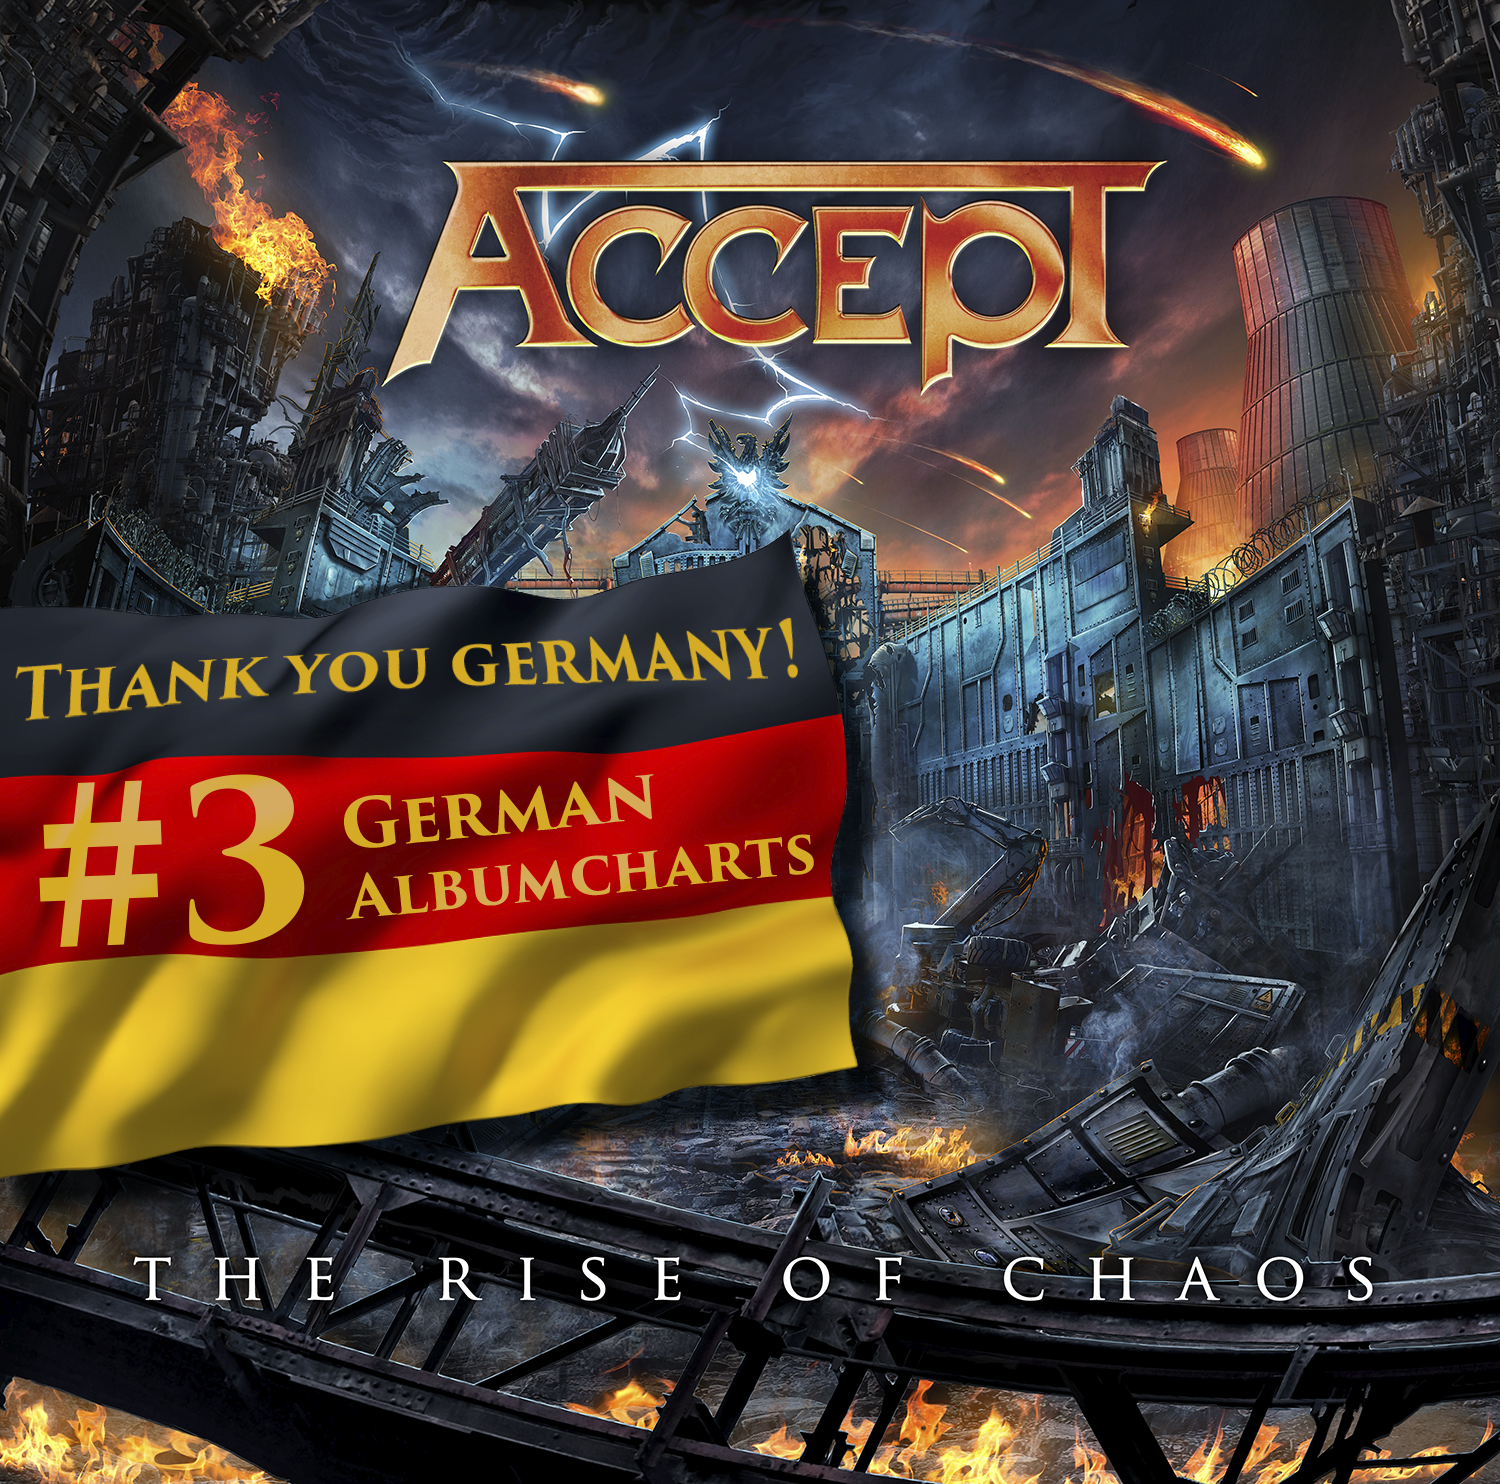 The Rise Of Chaos Debuted at #3 on the German Album Charts